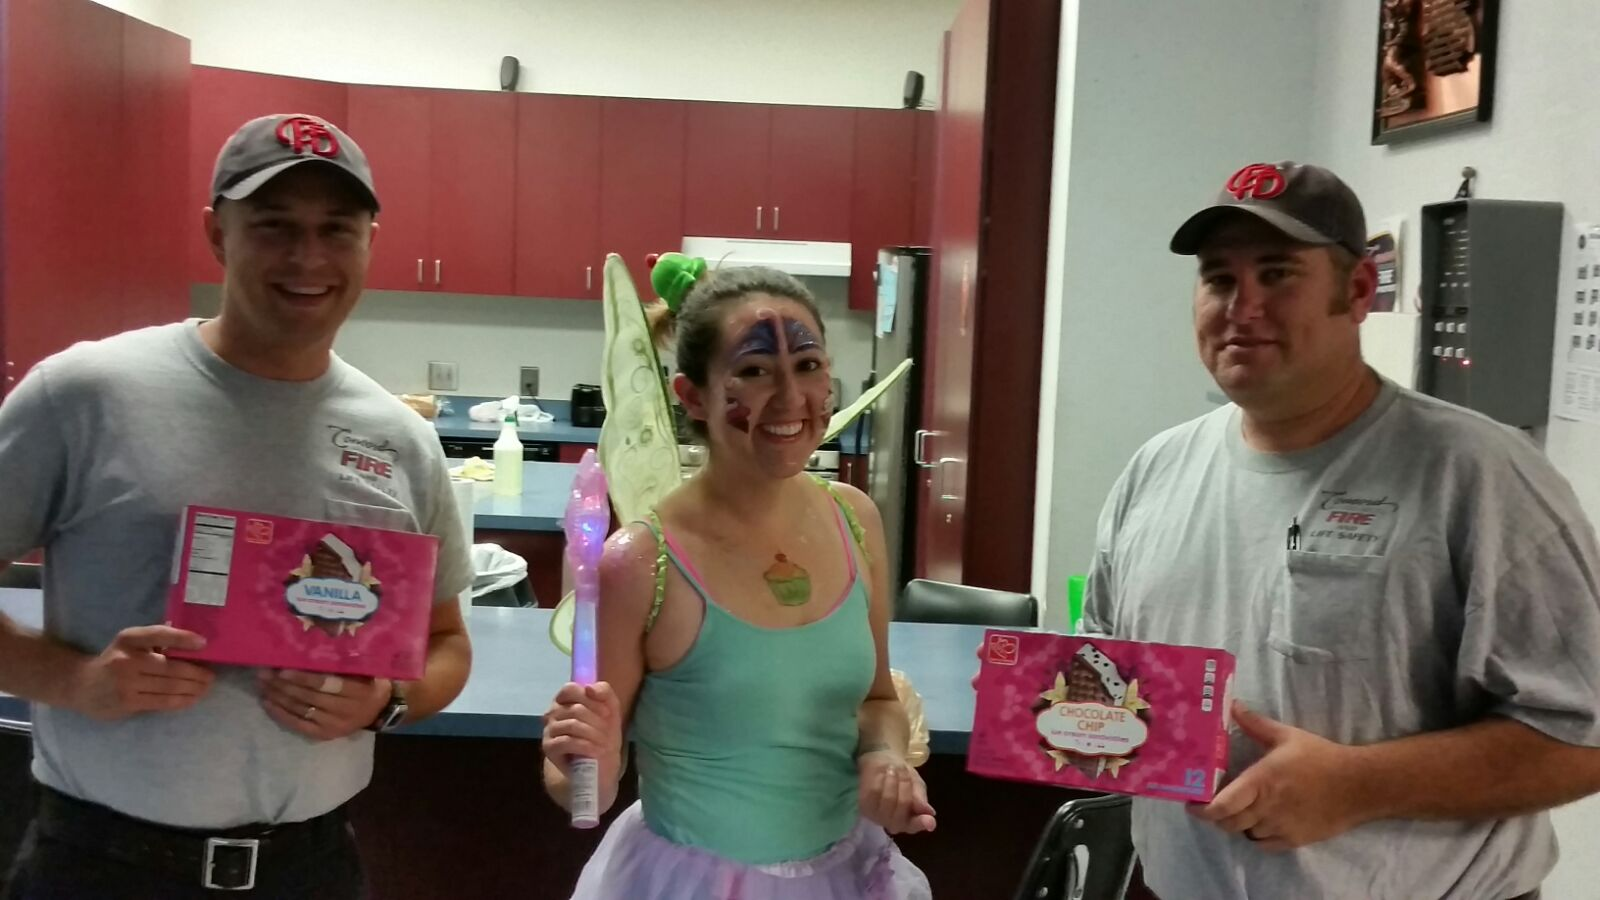 That's me...embracing my weird and delivering ice cream to our local fire department dressed as a fairy...this was for a  scavenger hunt called gishwhes  in 2016